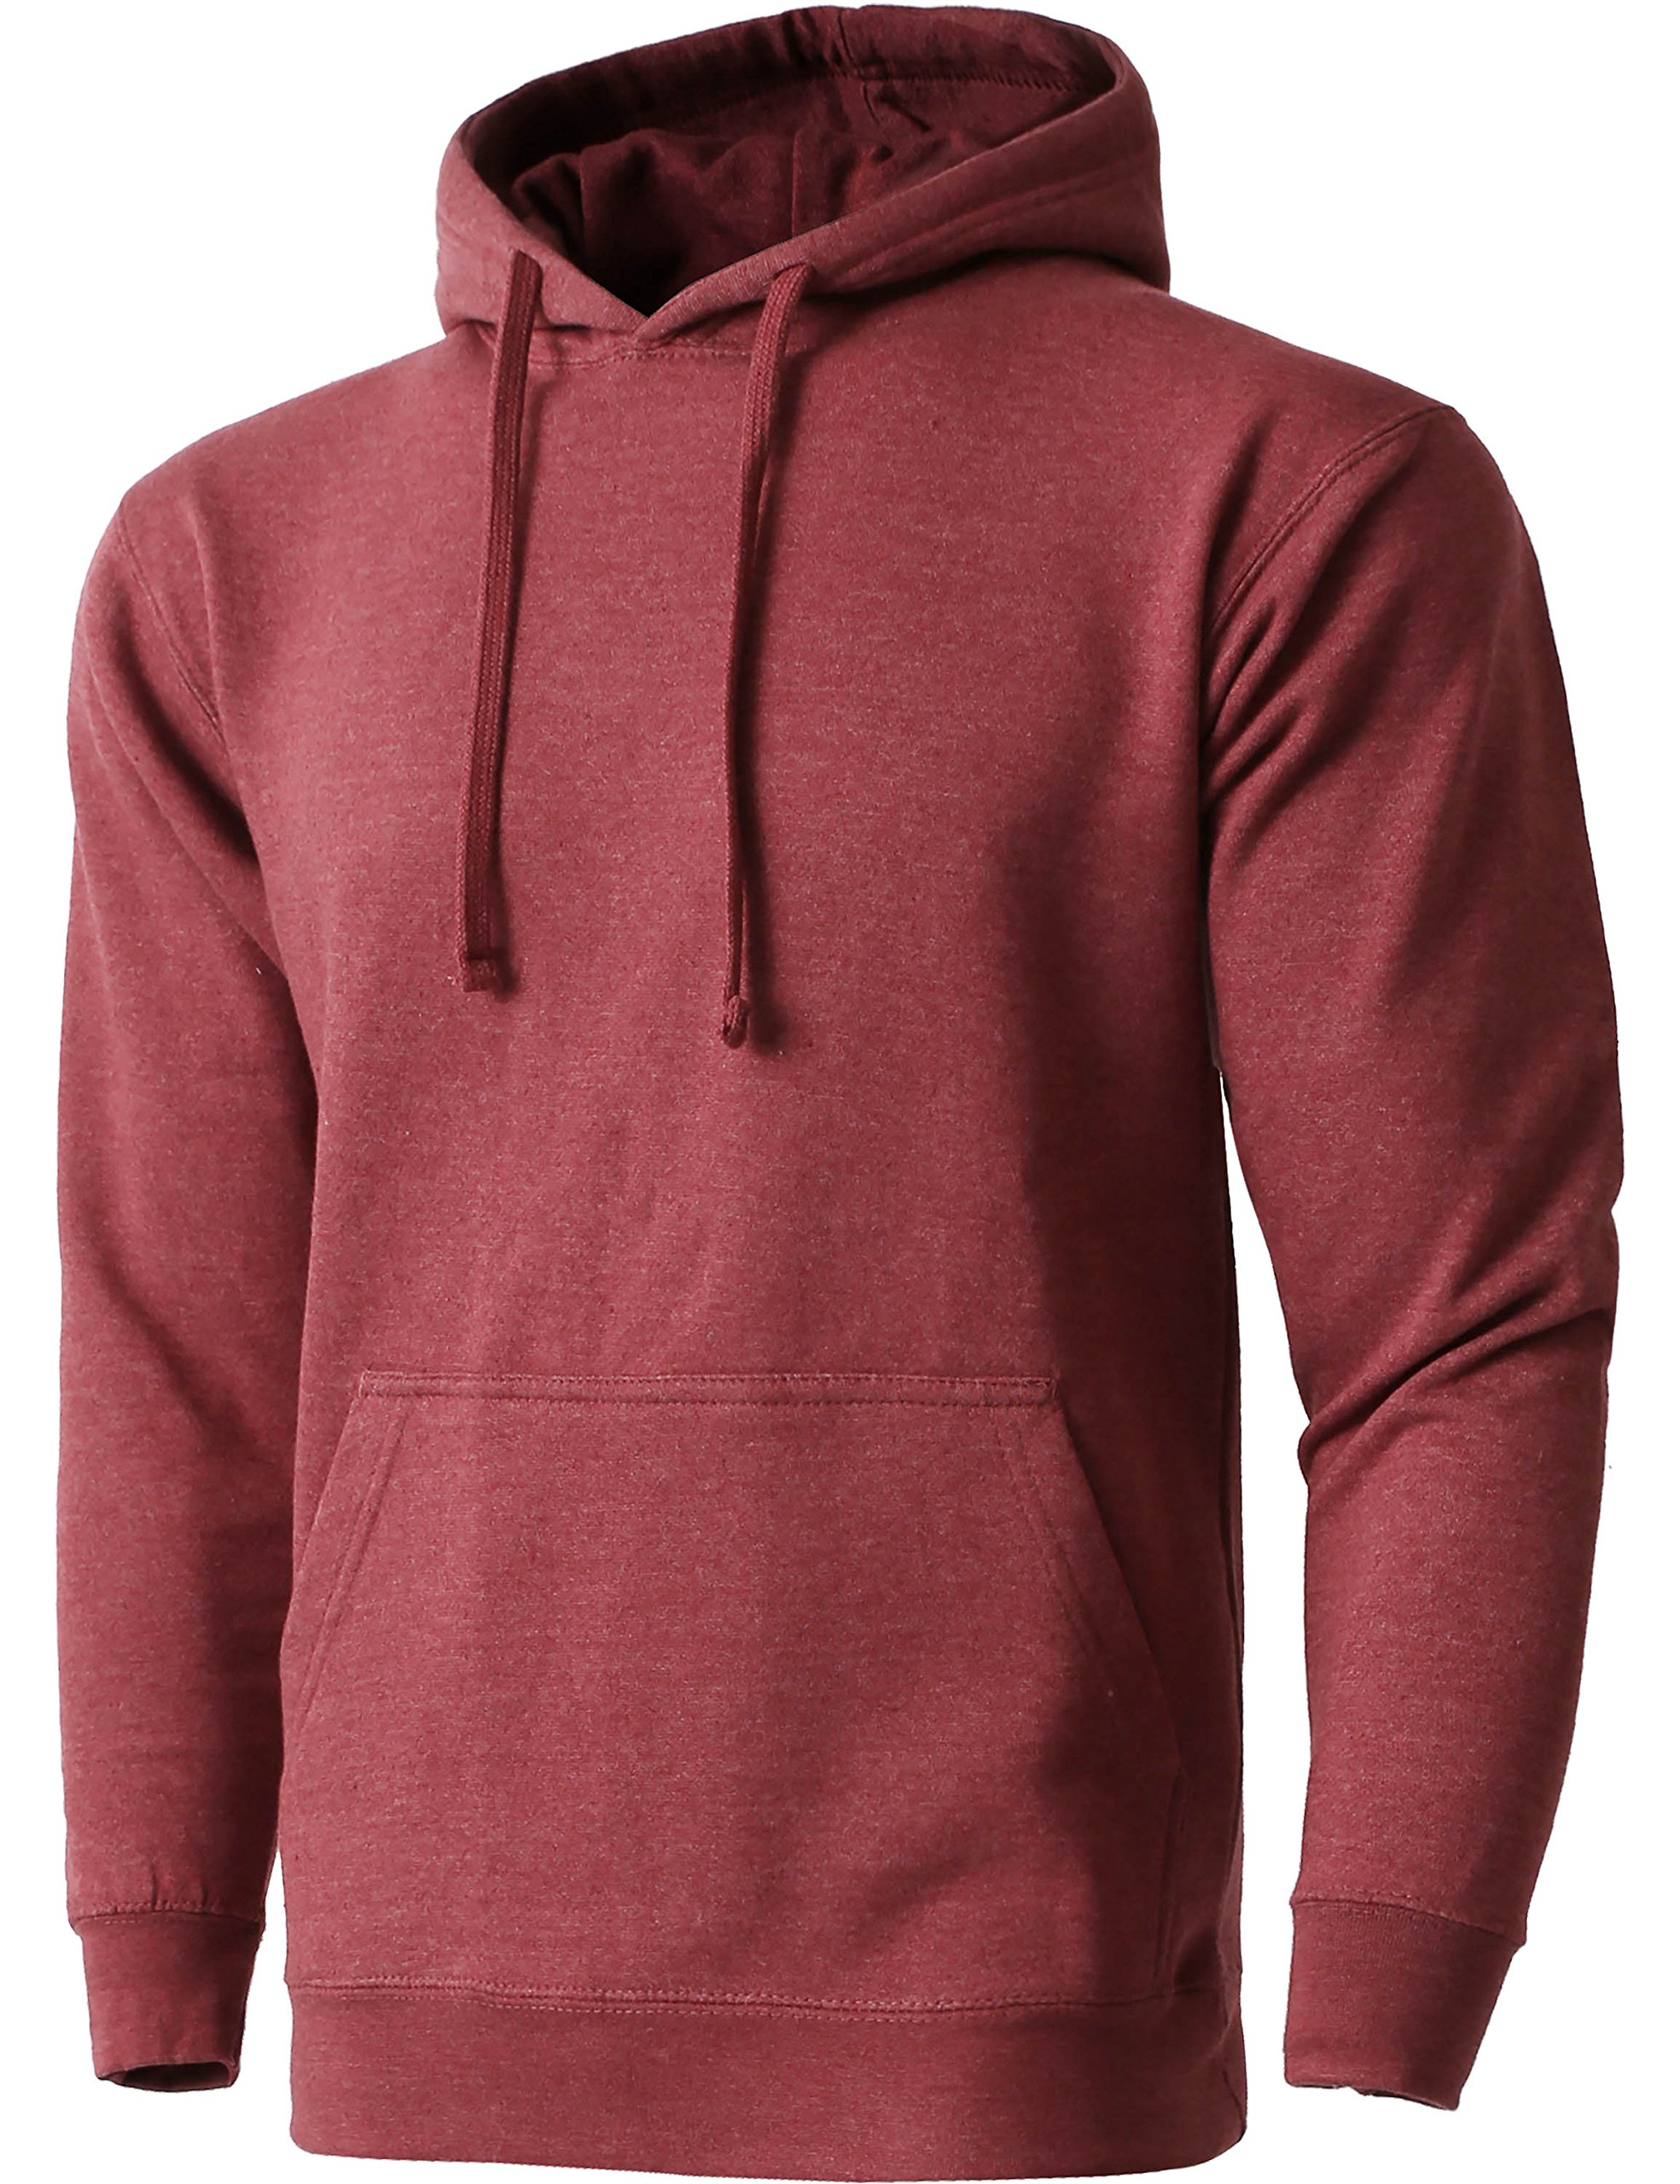 Hat and Beyond HC Mens Pullover Hoodie Sweatshirts Heavyweight Fleece Active Casual Pocket Jackets (Ma19_heaburgnd, Large)